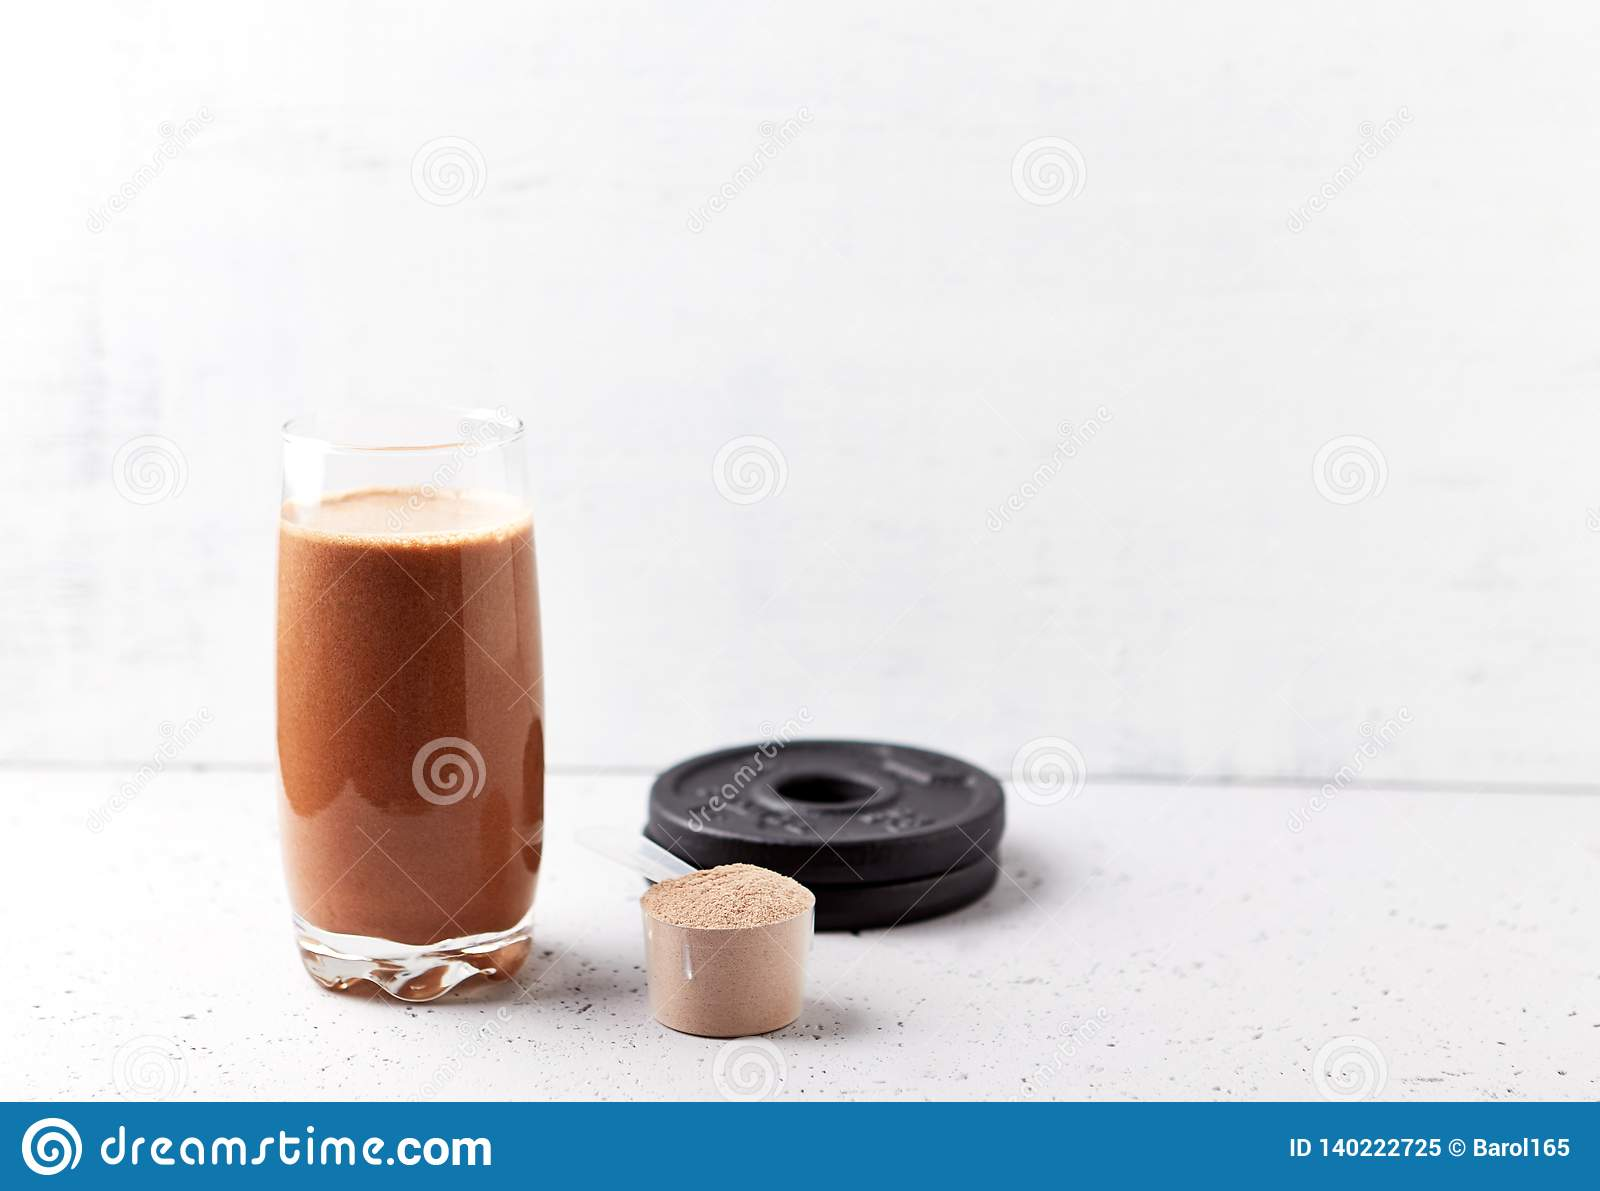 Glass Of Chocolate Protein Shake With Milk And Banana Whey Protein In Scoop And Black Plates In Background Sport Nutrition Stock Image Image Of Meal Bright 140222725